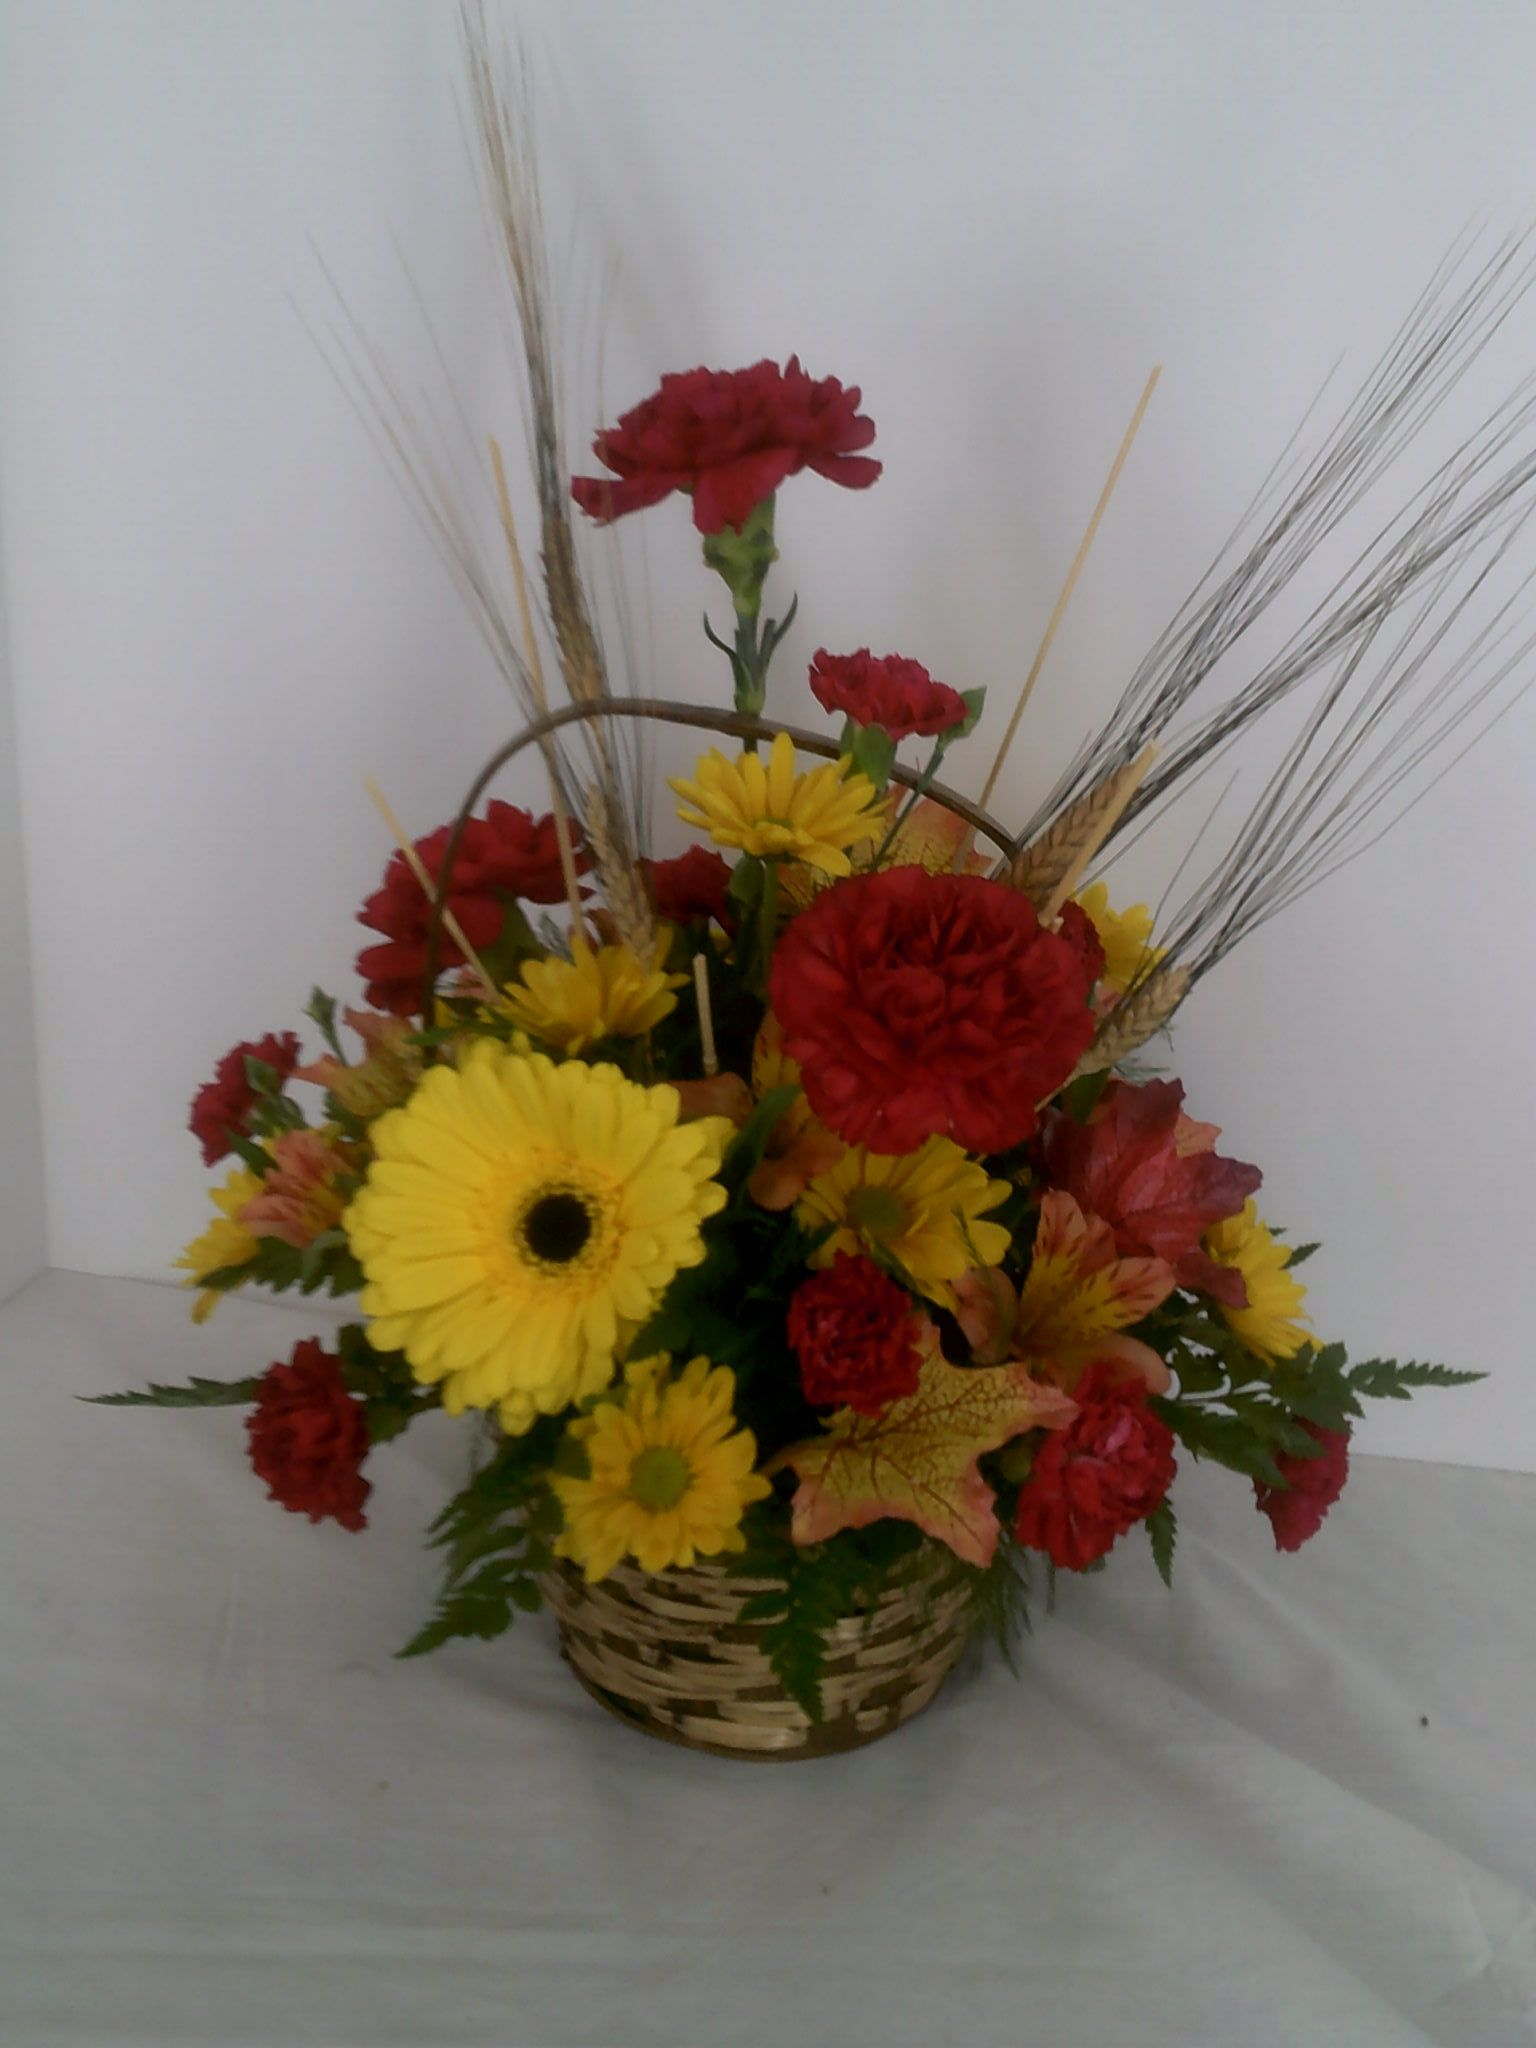 L 91 Basket Full Of Fall Leith Flower Plant Gift Shop Plaistow